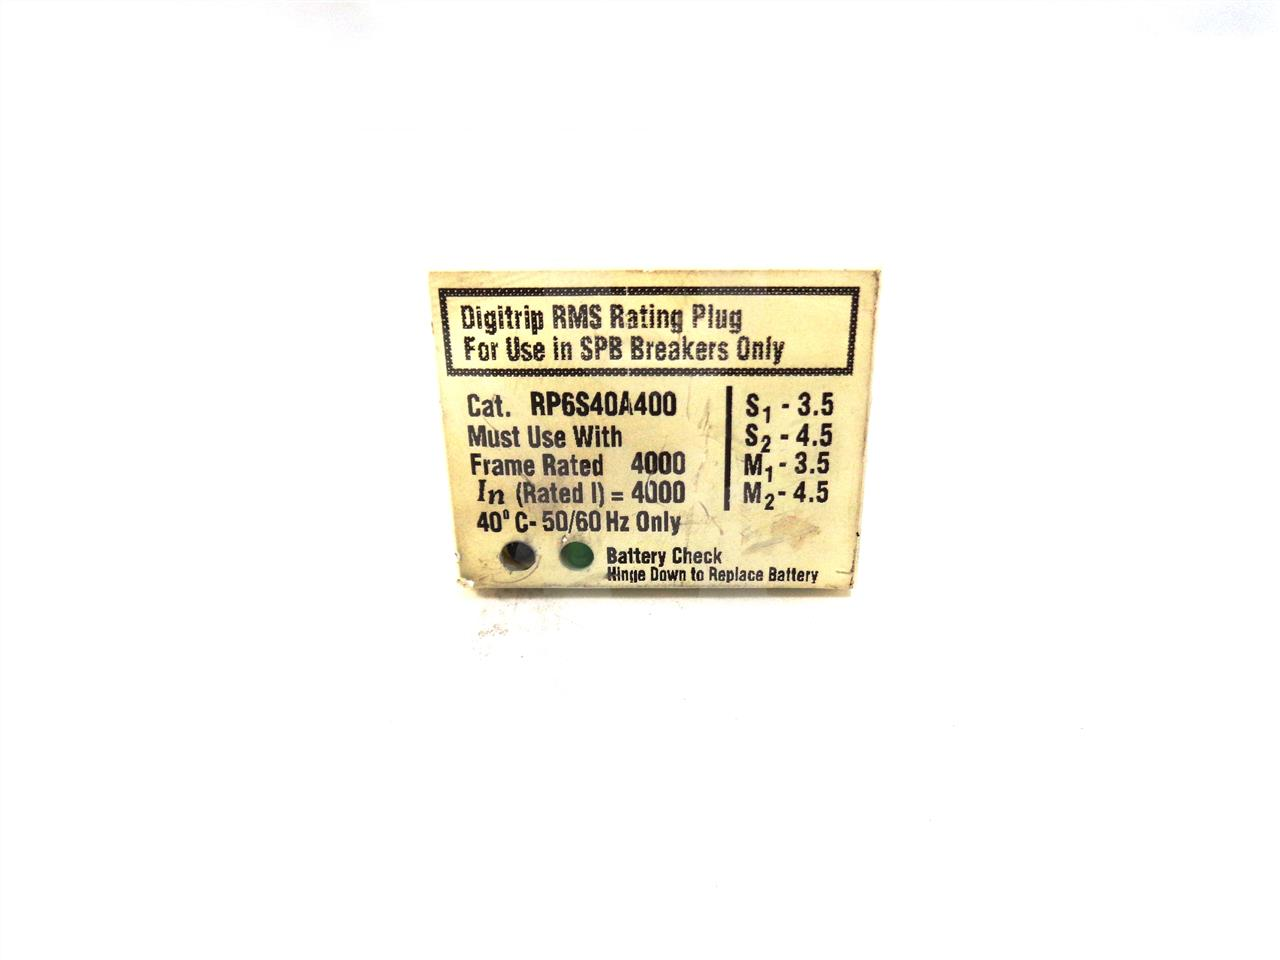 RP6S40A400 4000A Westinghouse RATING PLUG FOR DIGITRIP 10 SERIES, SPB